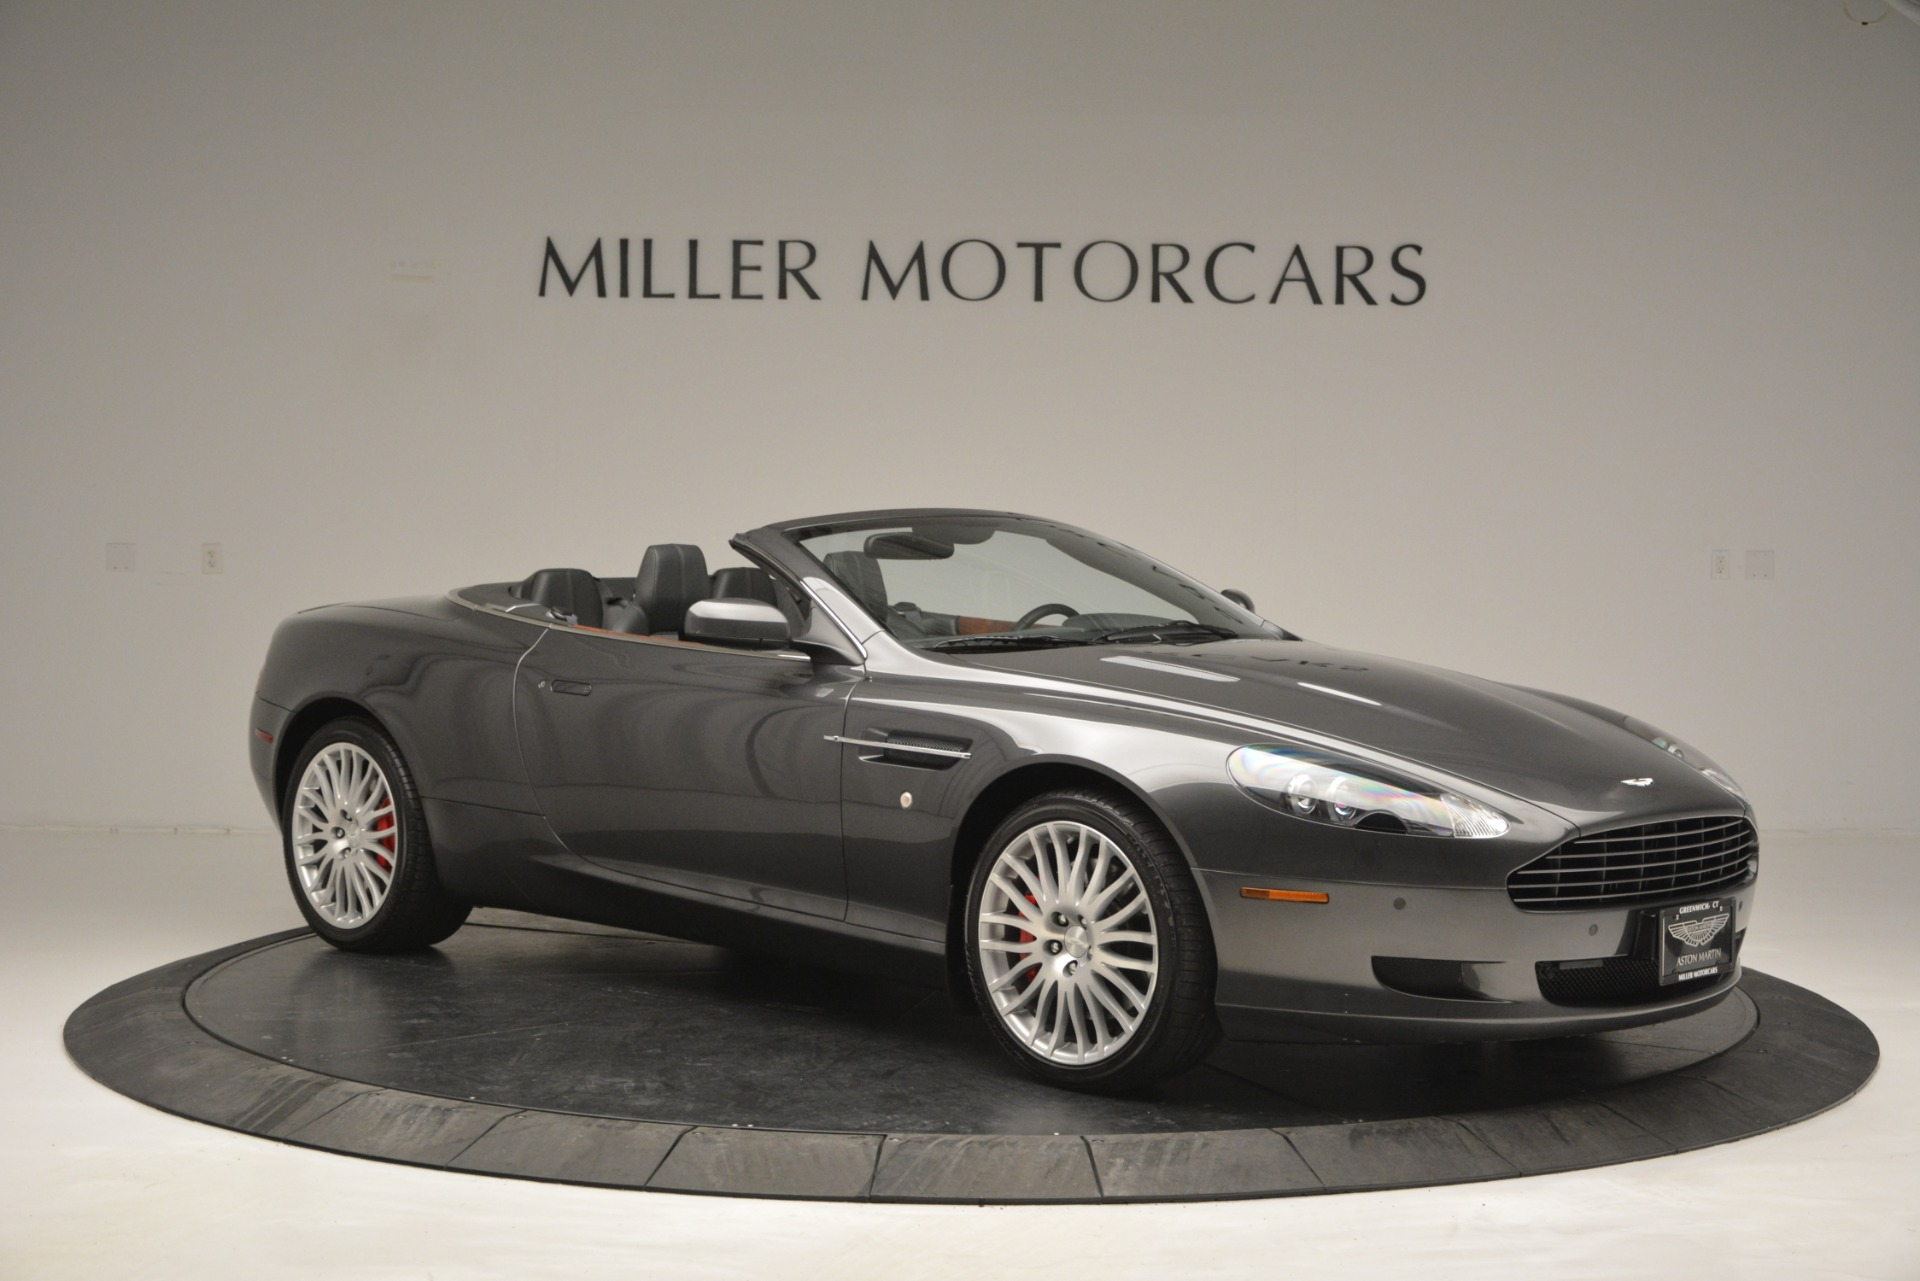 Used 2009 Aston Martin DB9 Convertible For Sale In Greenwich, CT 2930_p10